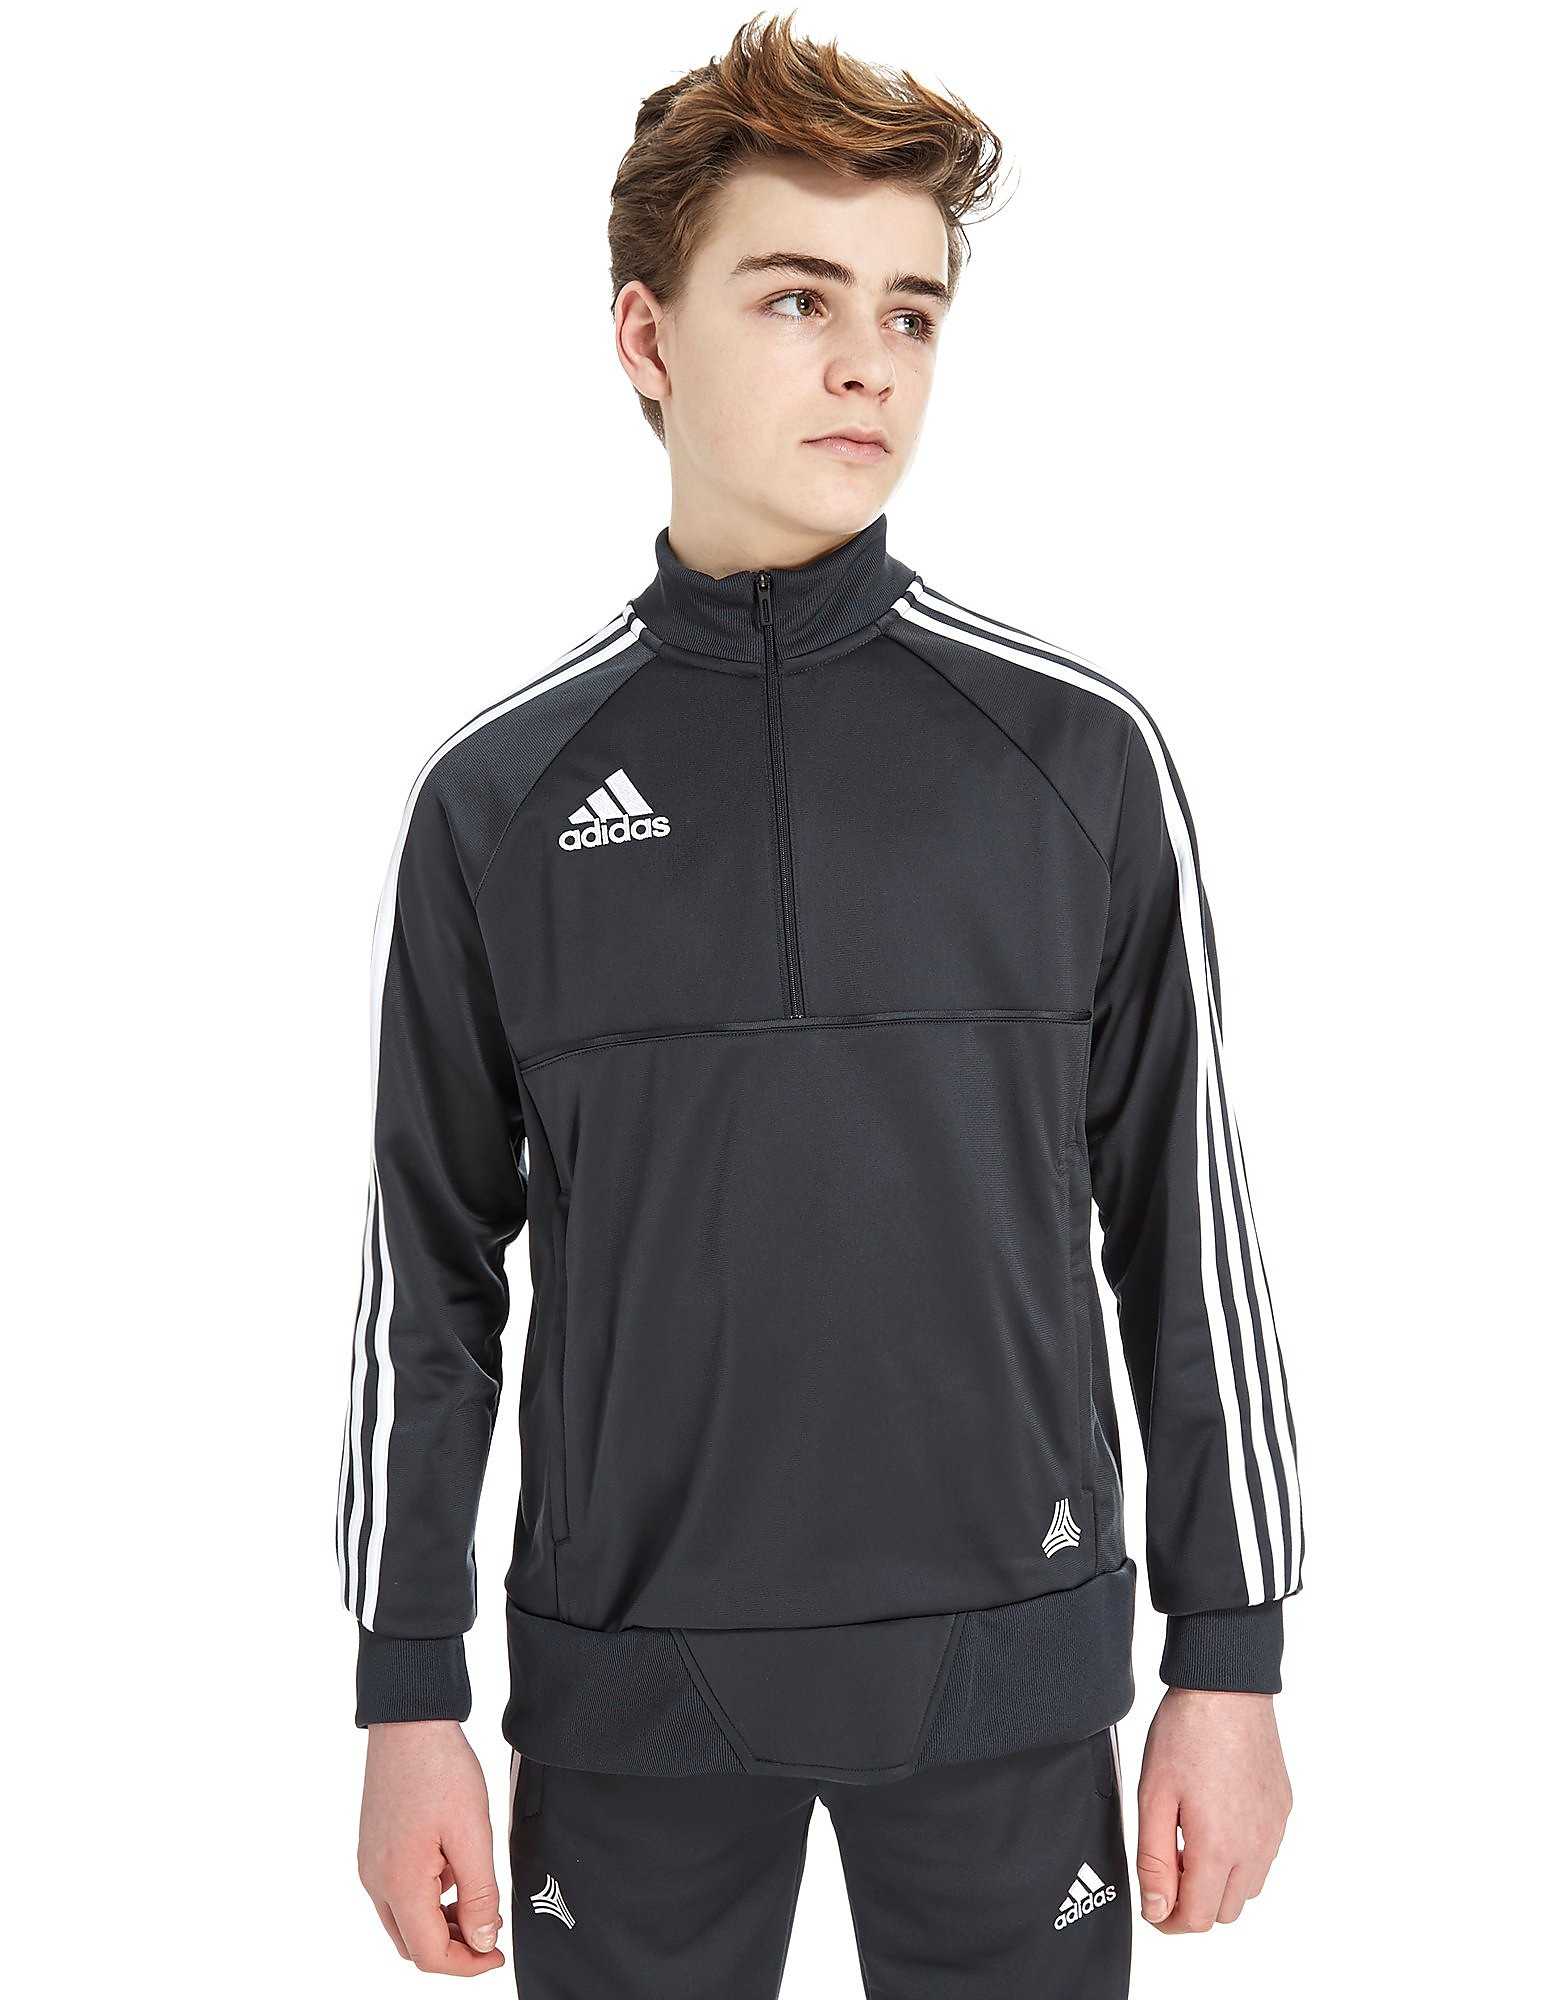 adidas Tango 1/2 Zip Jacket Junior